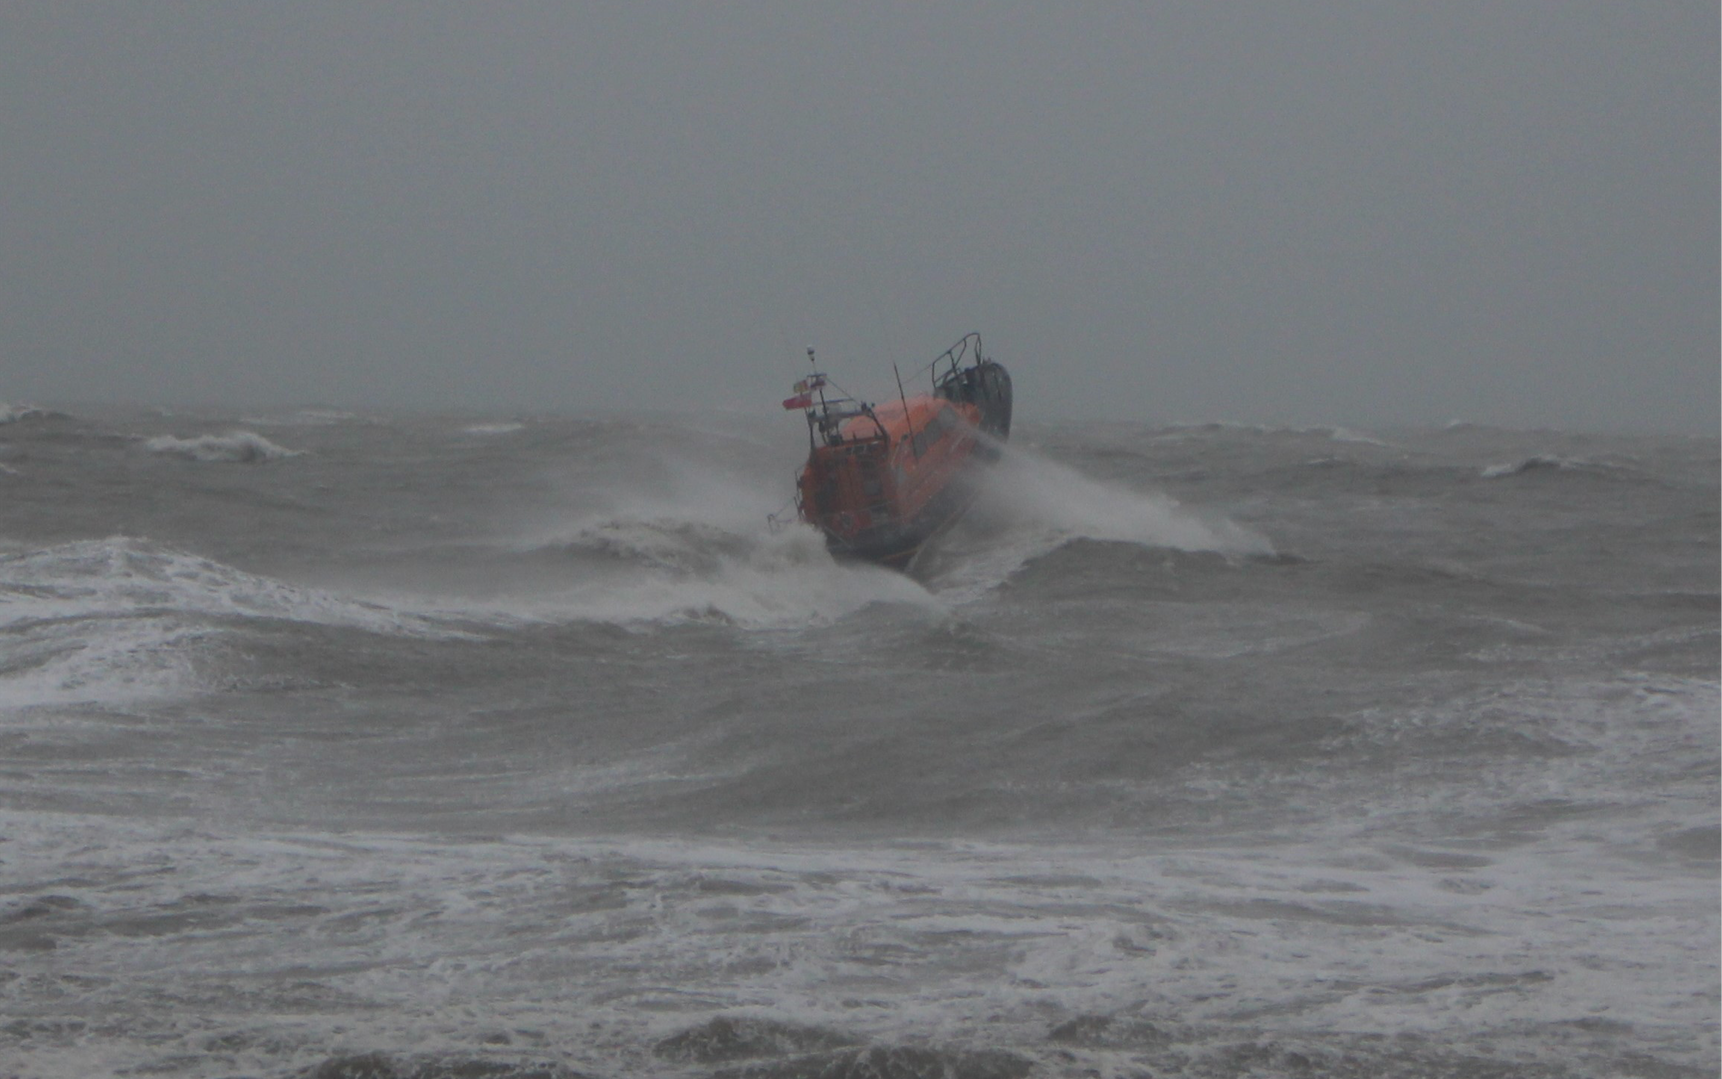 For those in peril on the sea! Last week's lifeboat drama in pictures…